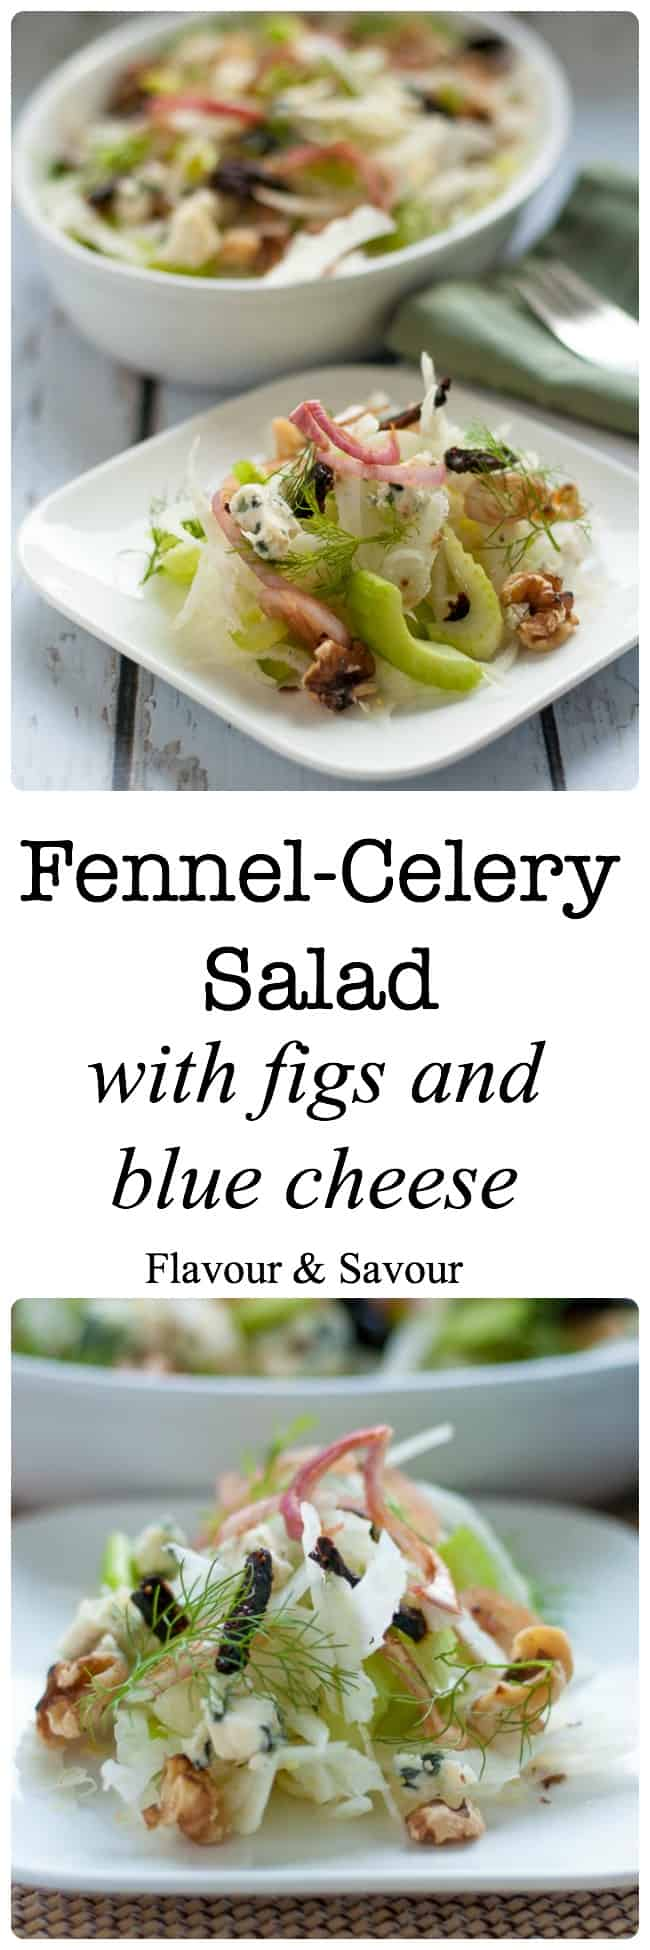 Fennel-Celery Salad with Figs and Blue Cheese.